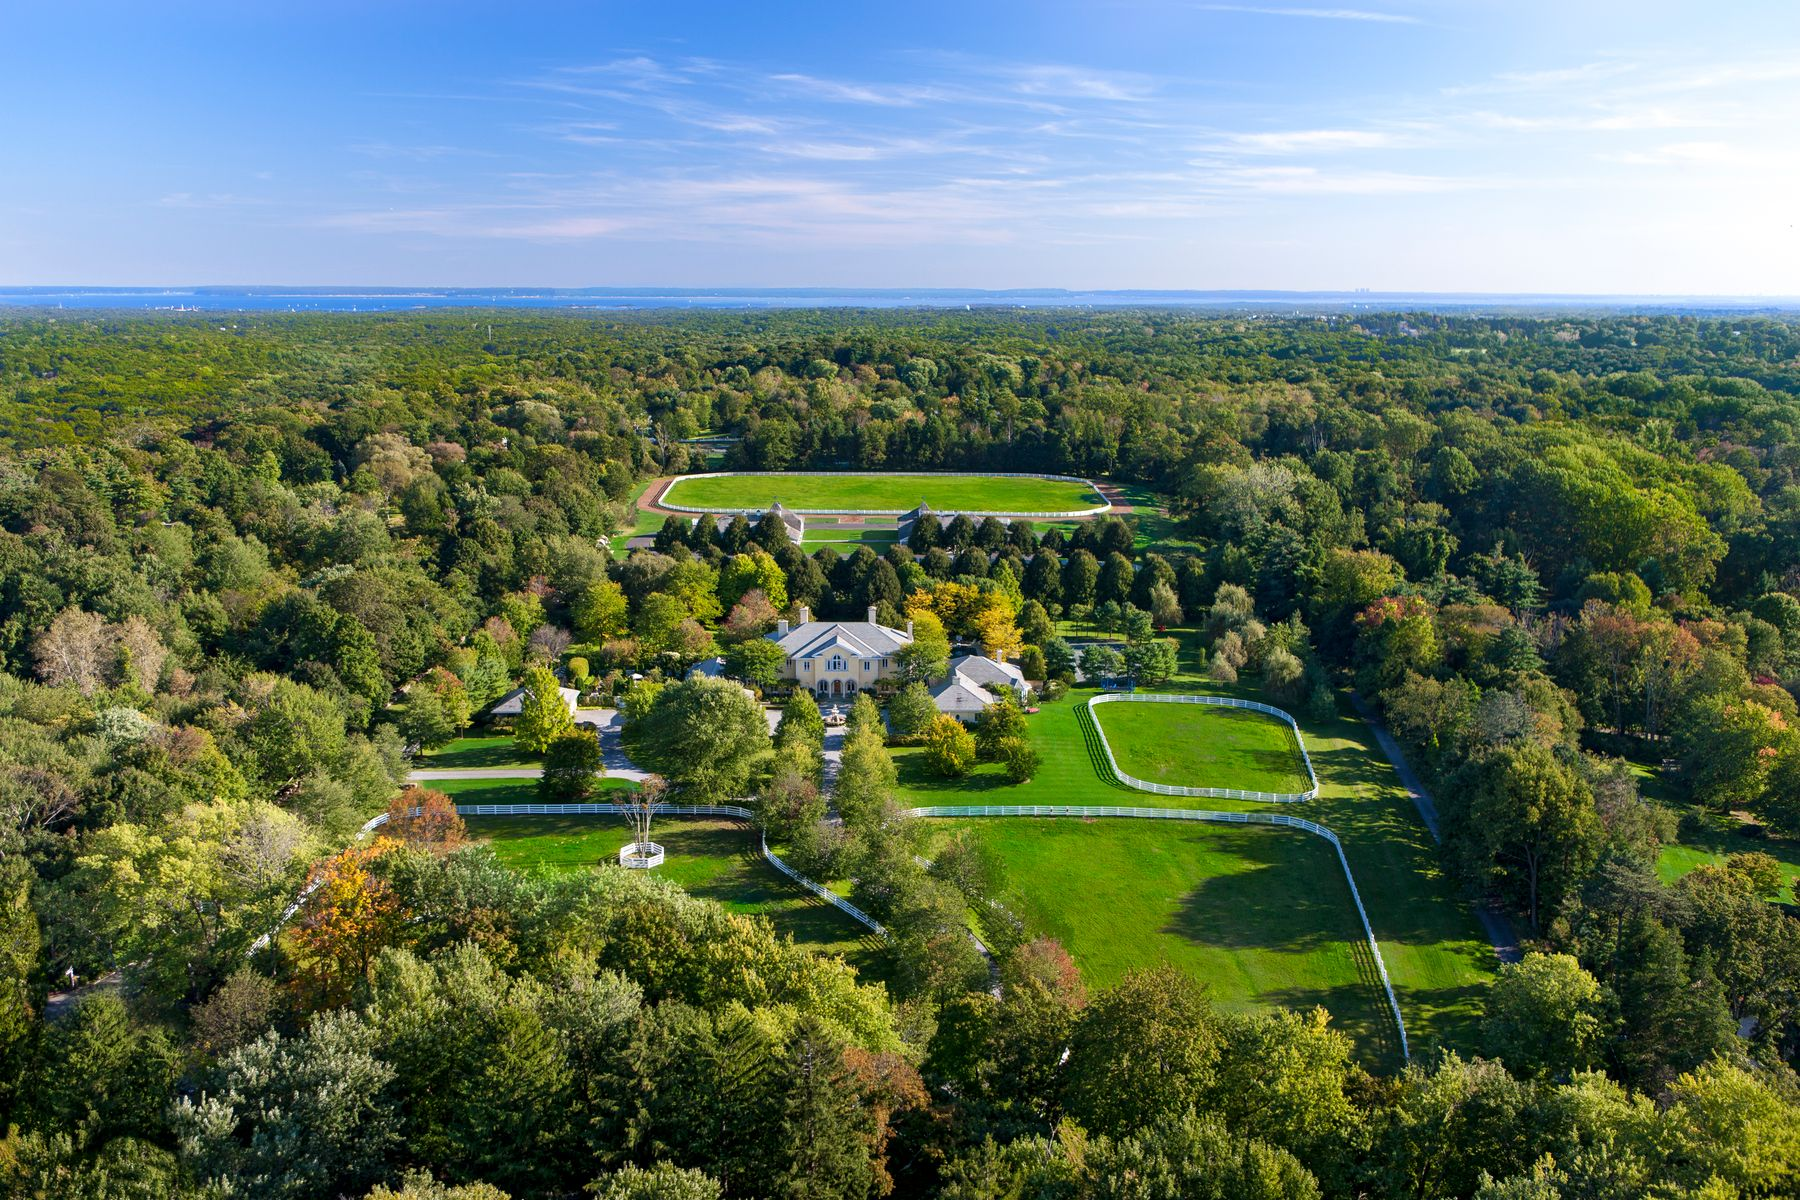 Single Family Homes for Active at Old Field Farm 160 John Street Greenwich, Connecticut 06831 United States